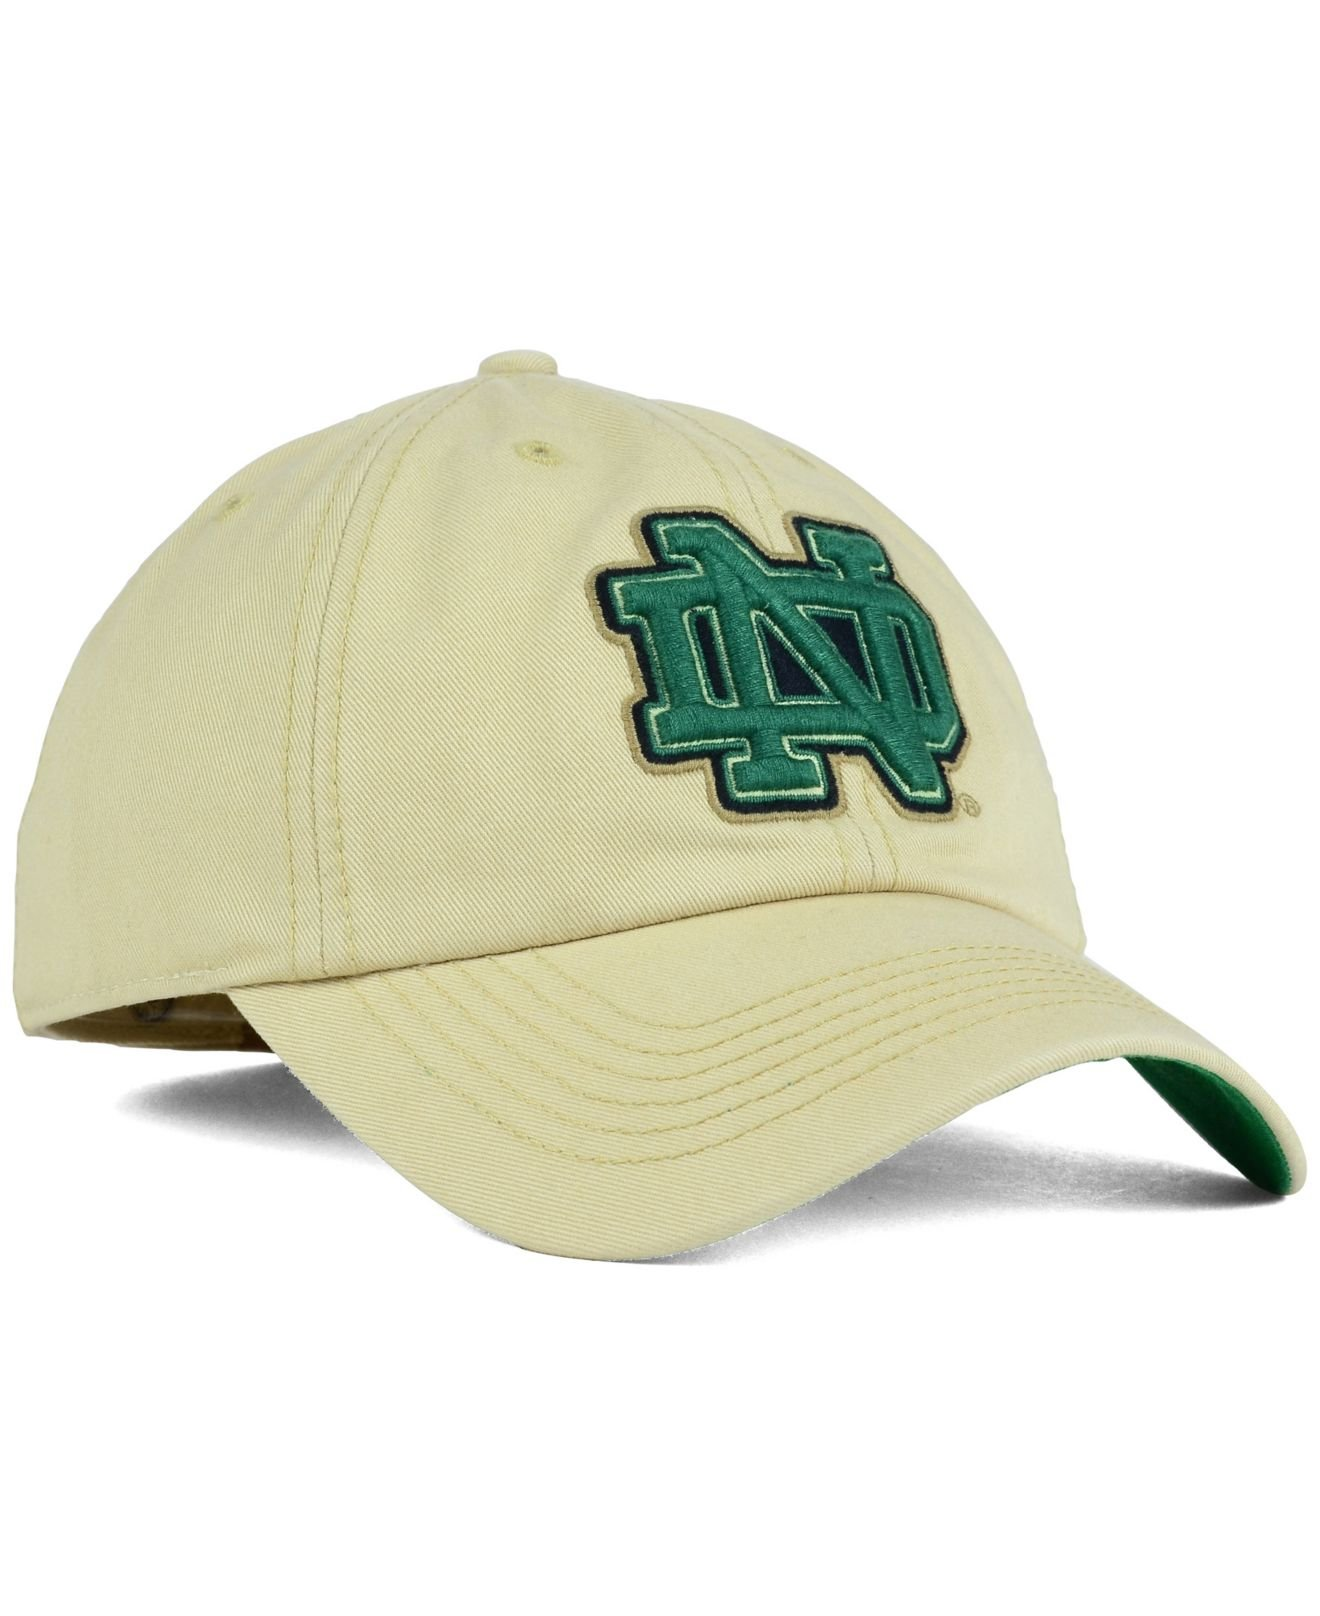 73ab5c79440 Lyst - 47 Brand Notre Dame Fighting Irish Franchise Cap in Natural ...